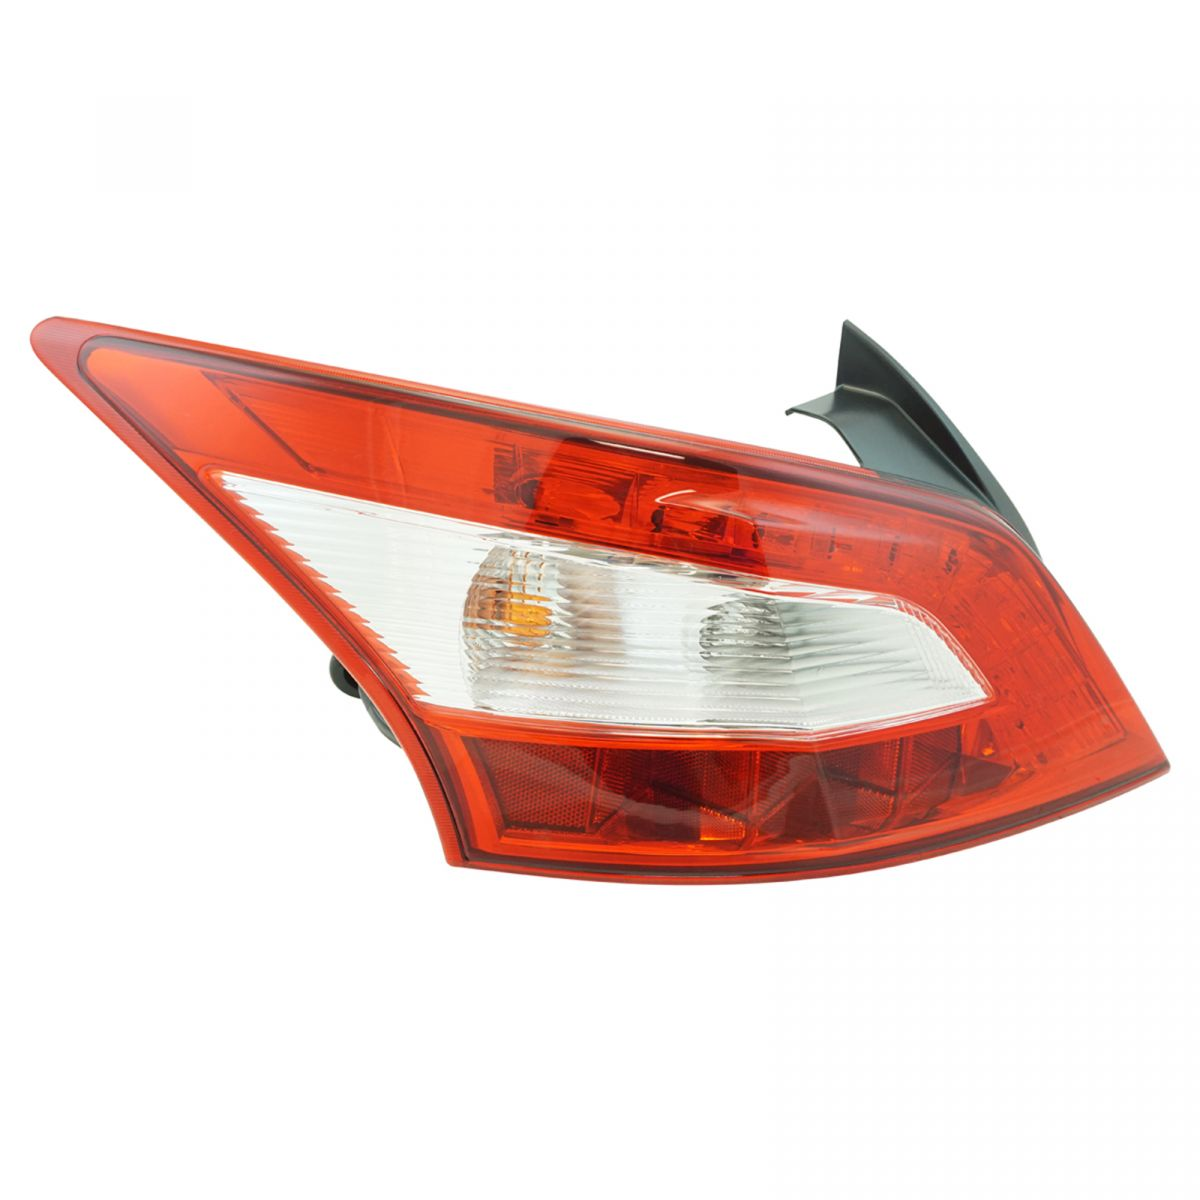 Rear Tail Light Lamp Assembly Driver Side LH LR for 09-11 Nissan Maxima New